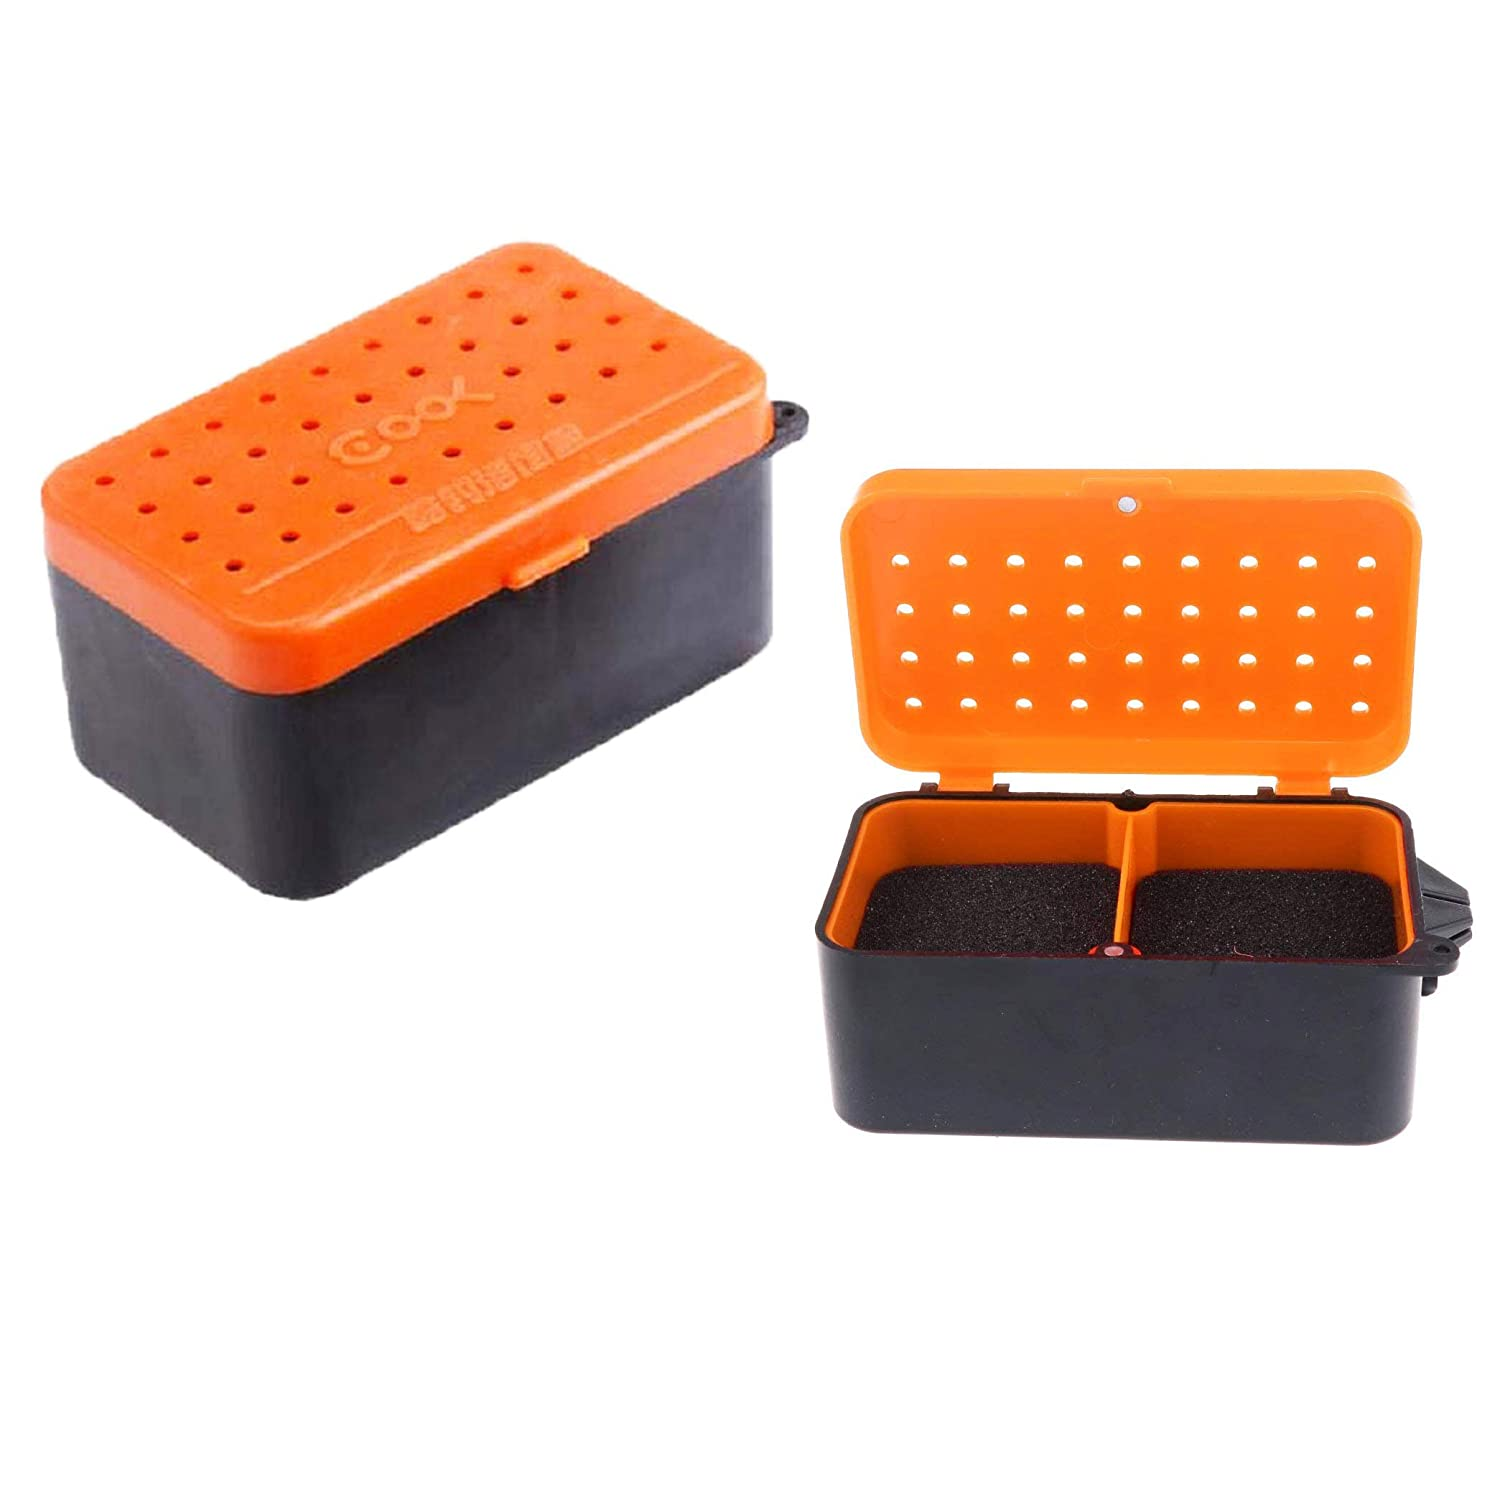 LDEXIN 2Pcs Worm Bait Box Fishing Plastic Portable 2 Compartment Lure Live Bait Fishing Gear Tackle Box Storage Case Worms Earthworm Holder Container